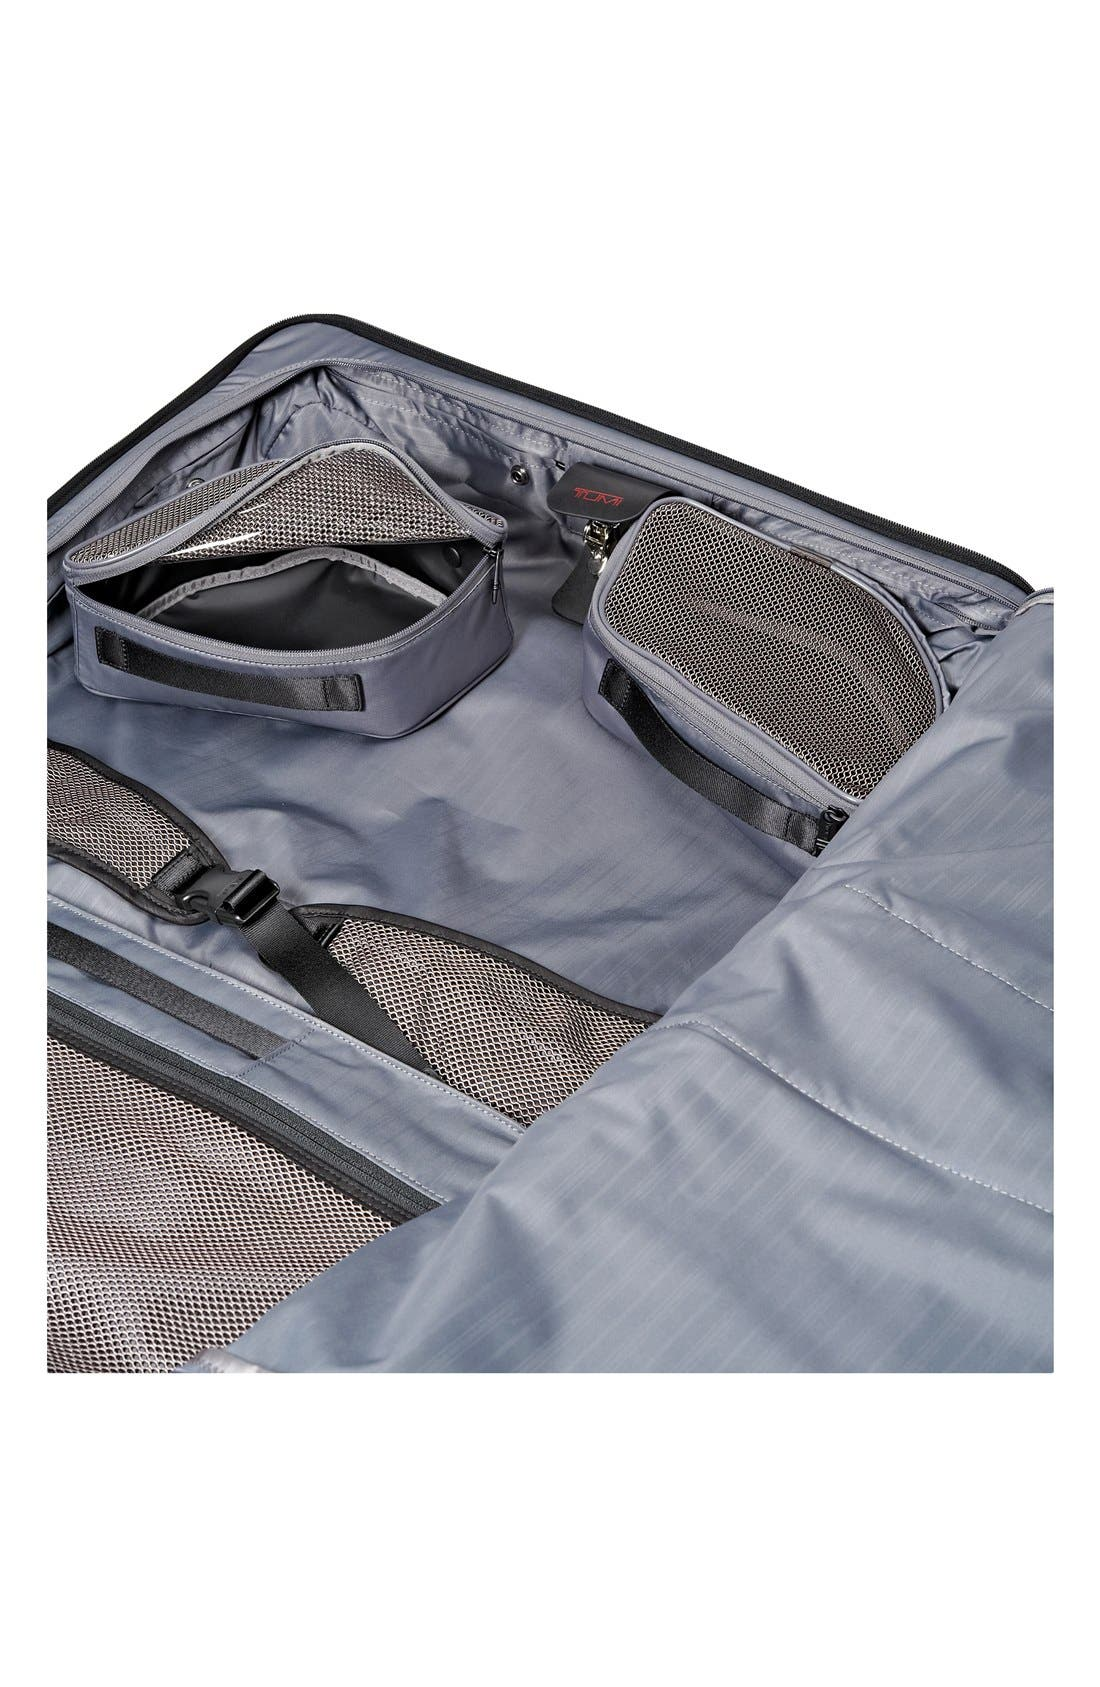 Alternate Image 3  - Tumi 'Alpha 2' Wheeled Carry-On Garment Bag (22 Inch)